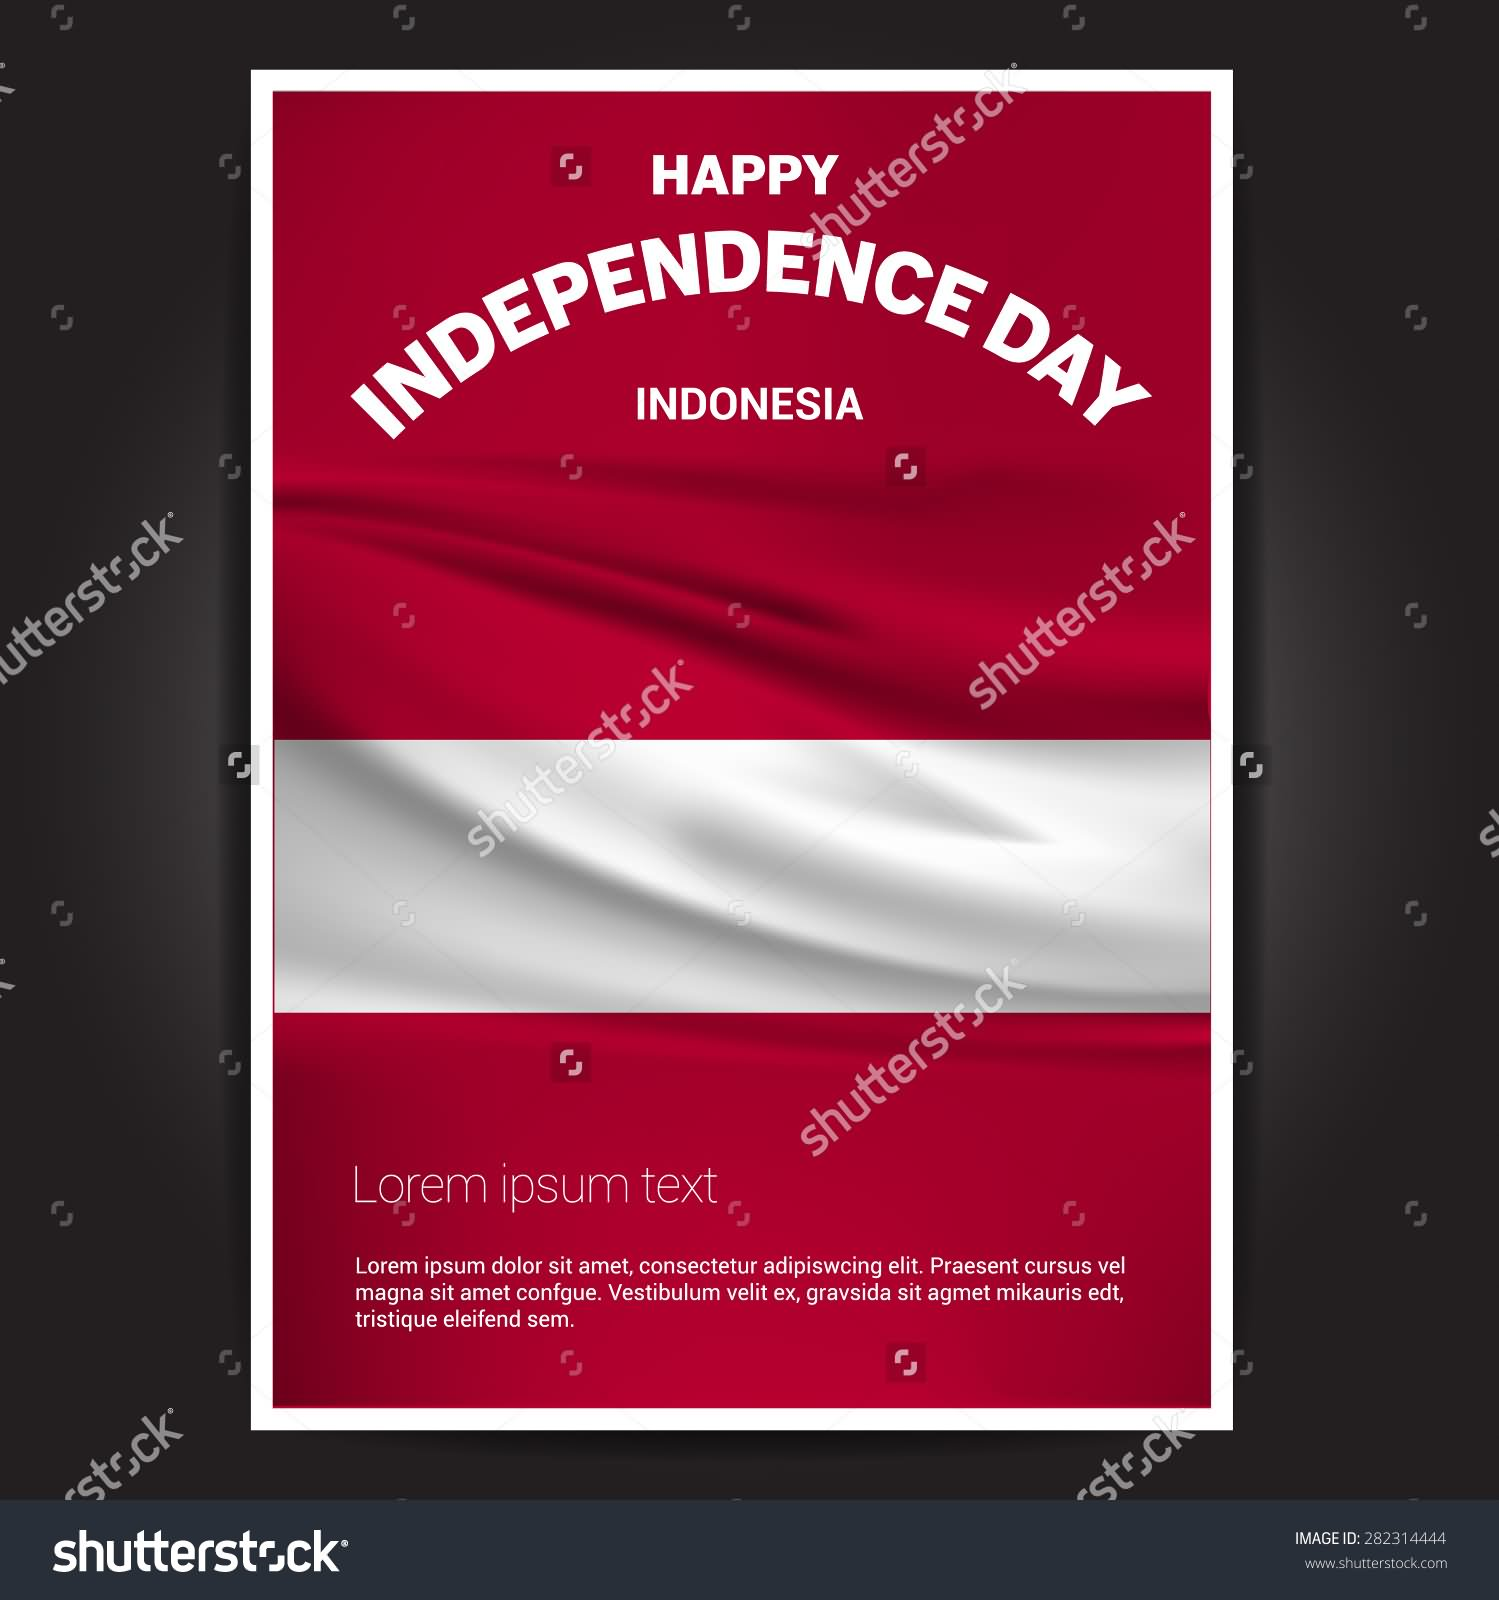 25 incredible indonesia independence day wishes photos and images happy independence day indonesian greeting card m4hsunfo